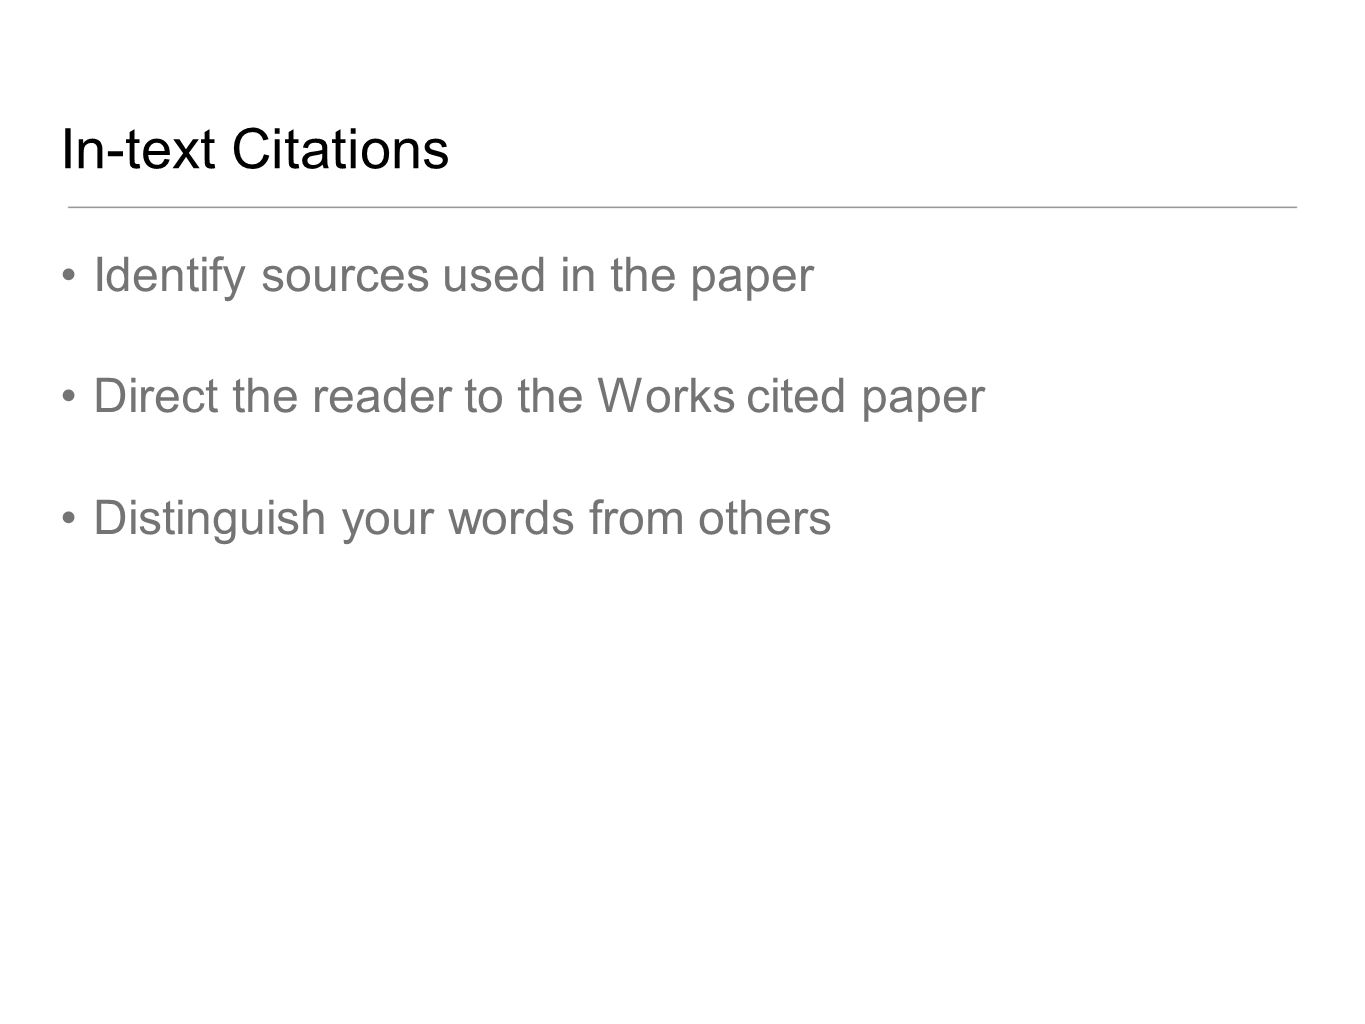 In-text Citations Identify sources used in the paper Direct the reader to the Works cited paper Distinguish your words from others